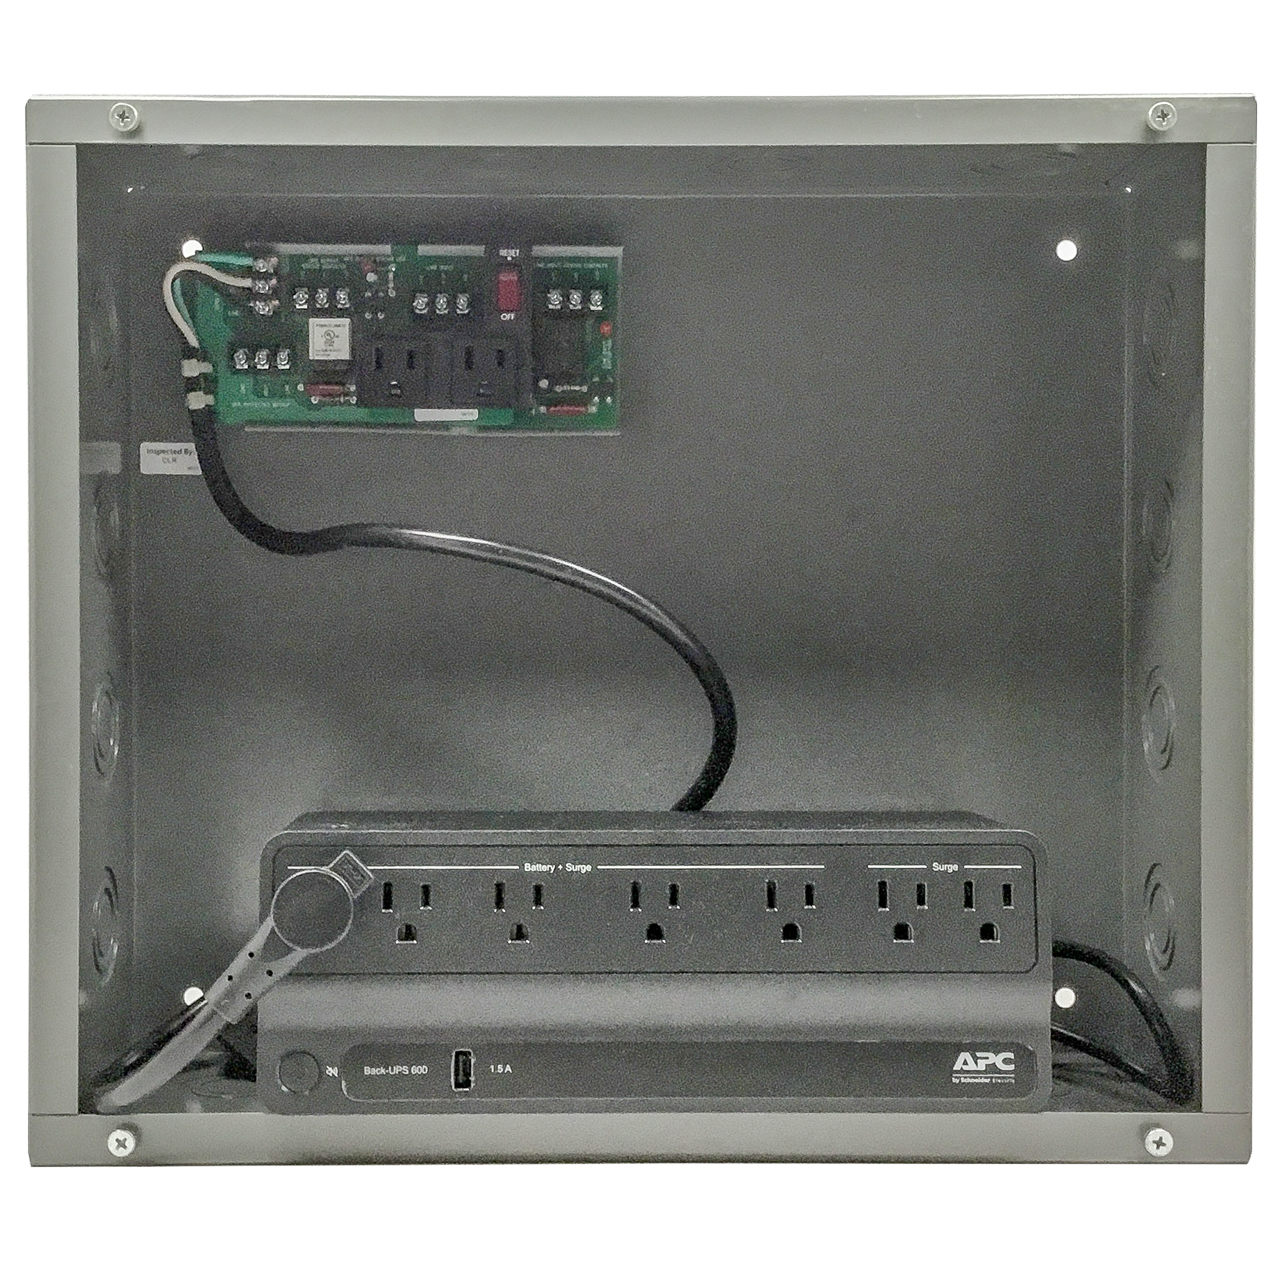 PSH600-UPS-STAT - Functional Devices Enclosed 600VA UPS Backup Power Supply  with Status Contacts